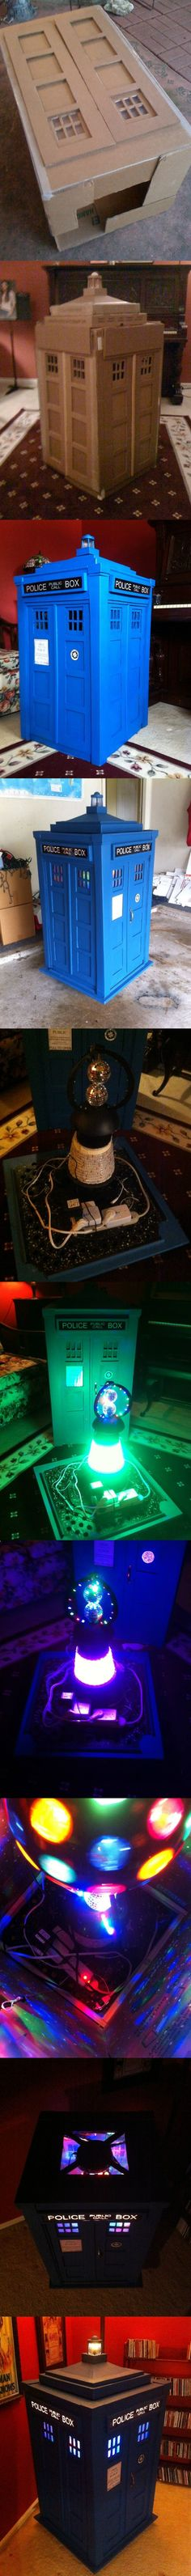 DIY Tardis Jukebox is Bigger on the Inside The Tardis, Recycle Cardboard Box, Cardboard Boxes, Diy Upcycling, Ideias Diy, Geek Crafts, Blue Box, Dr Who, Superwholock